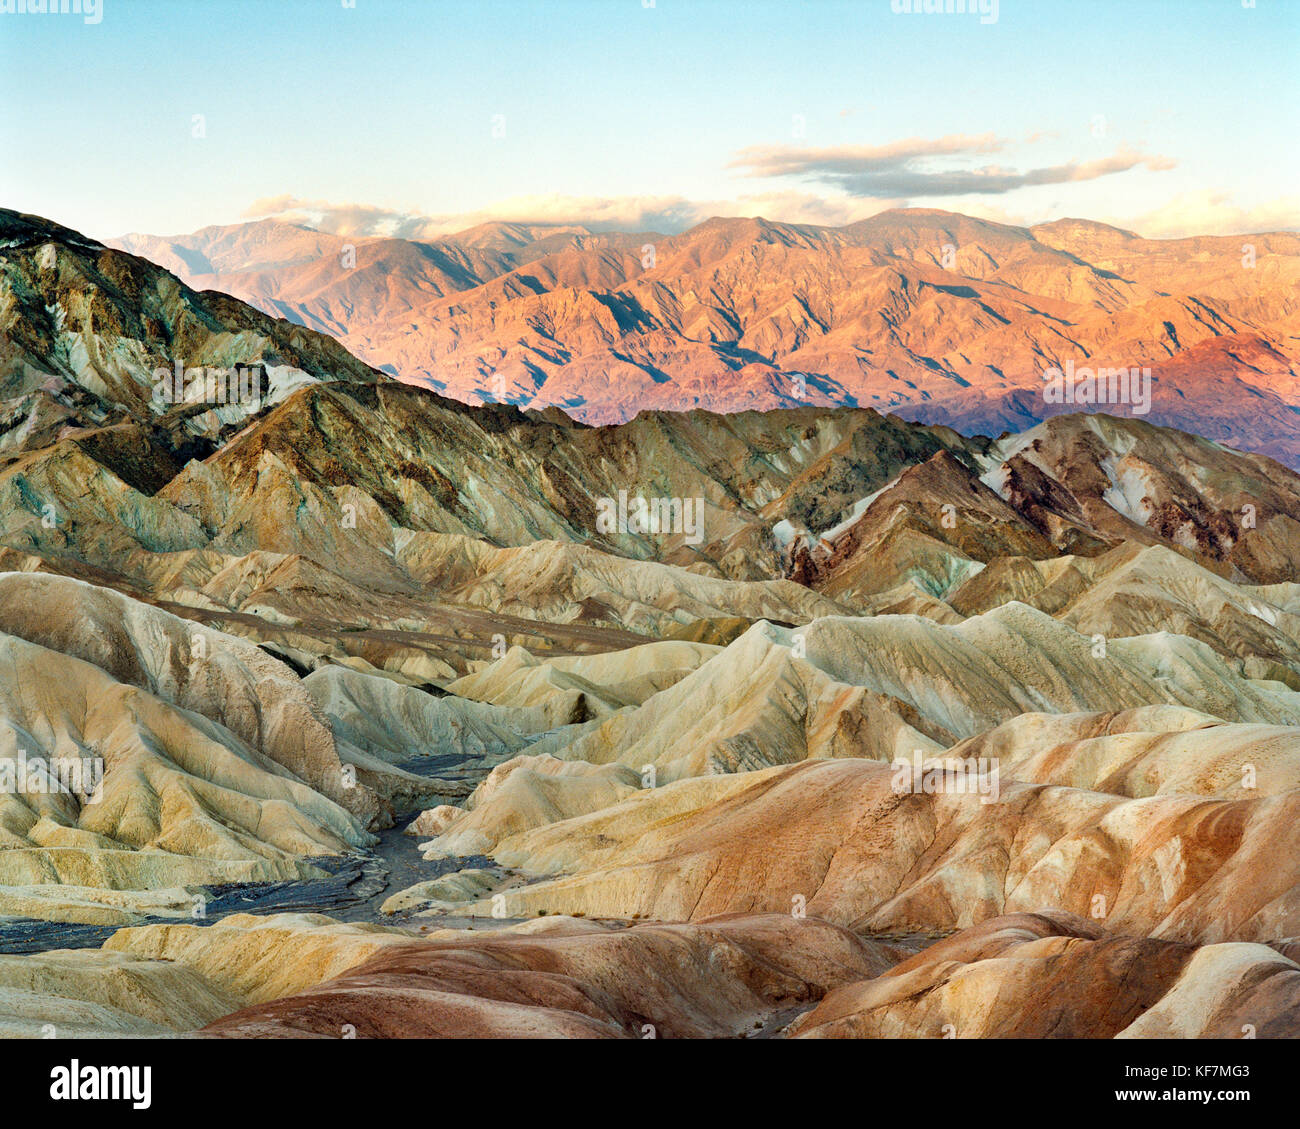 USA, California, view of mountain range from Zabriske Point, Death Valley National Park - Stock Image